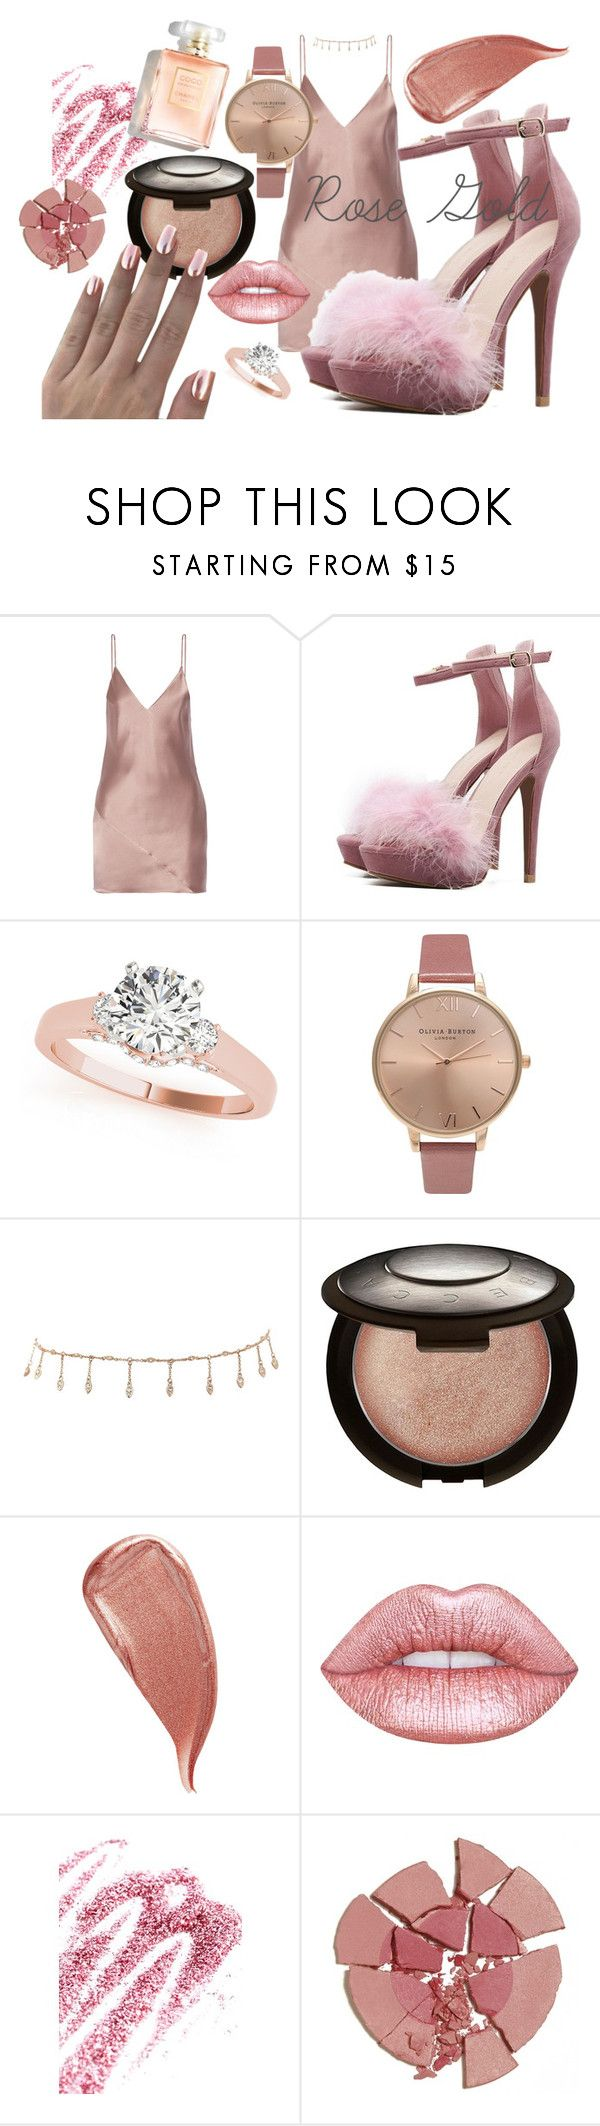 """""""Rosy"""" by sweatpantsarevogue ❤ liked on Polyvore featuring Fleur du Mal, Olivia Burton, Luv Aj, Becca, Kevyn Aucoin, Lime Crime, Obsessive Compulsive Cosmetics and Charlotte Tilbury"""